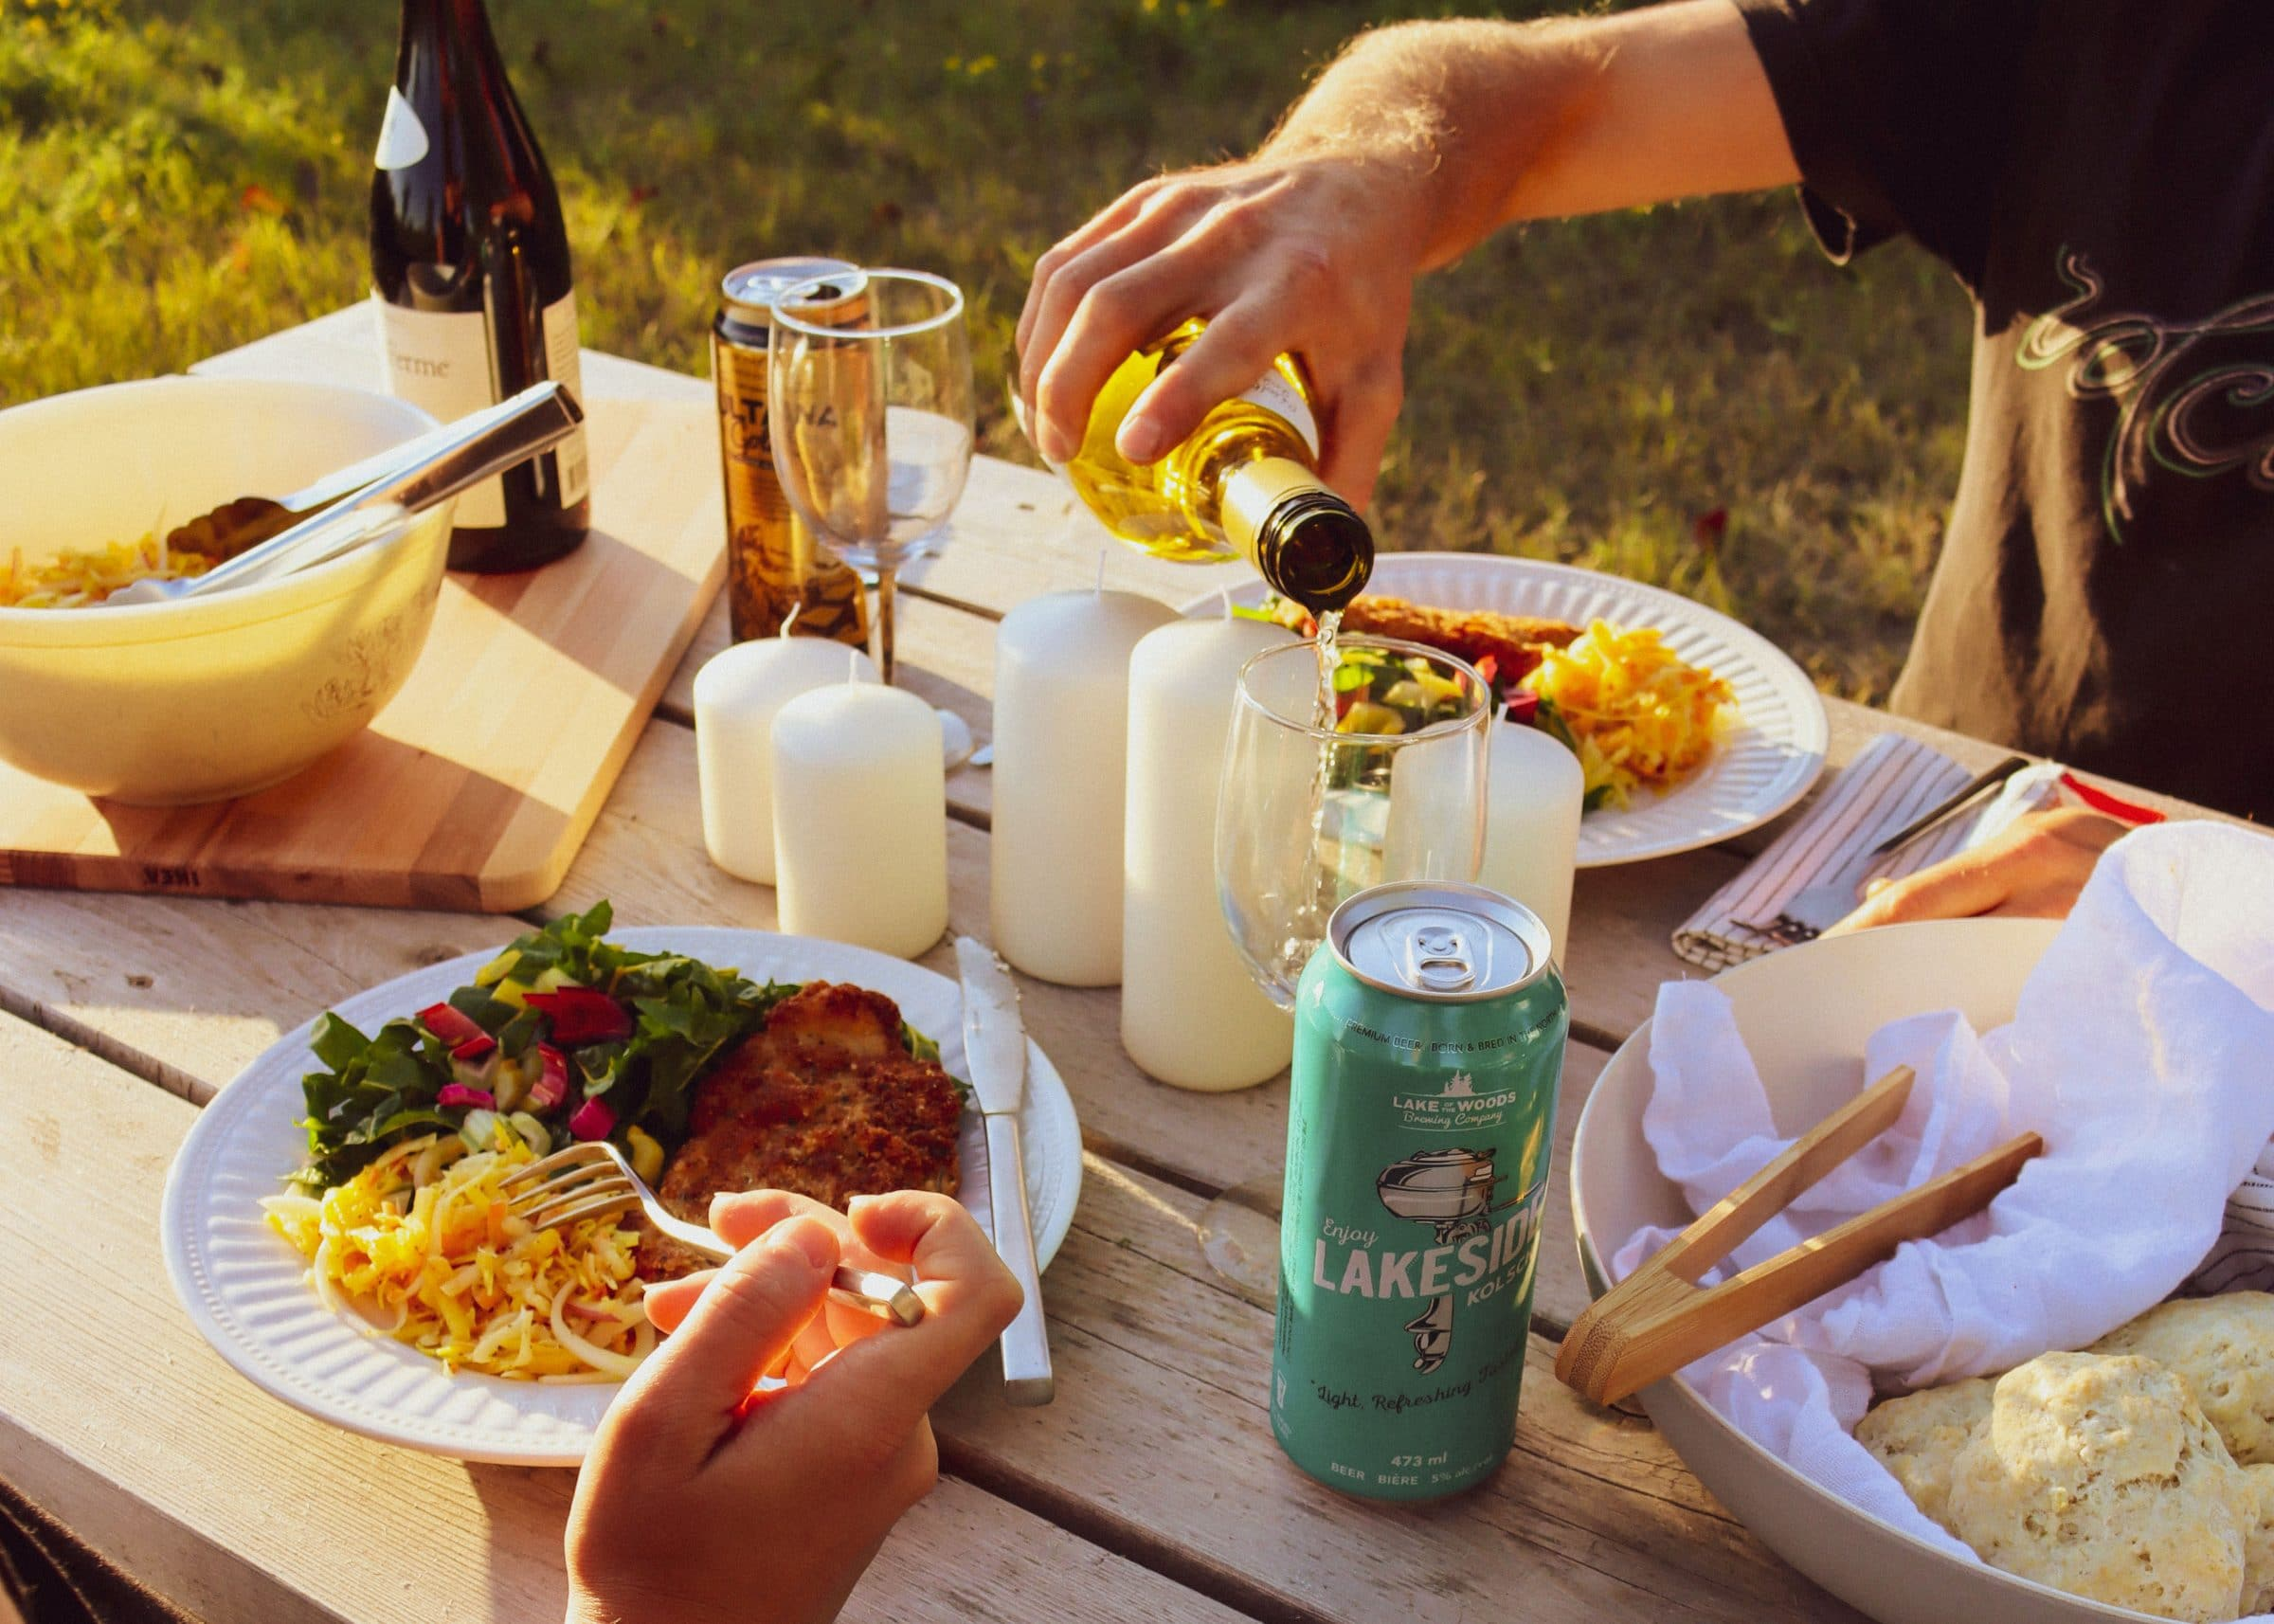 Wine is being poured into a glass at sunset with various beverages and plates of food on a picnic table.